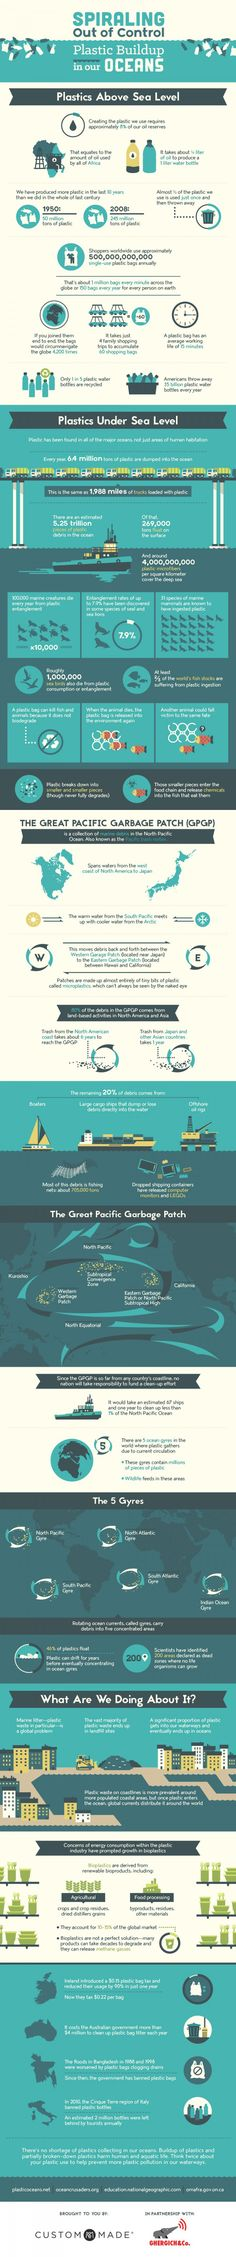 INFOGRAPHIC: Our ocean plastic problem is quickly spiraling out of control | Inhabitat - Sustainable Design Innovation, Eco Architecture, Green Building